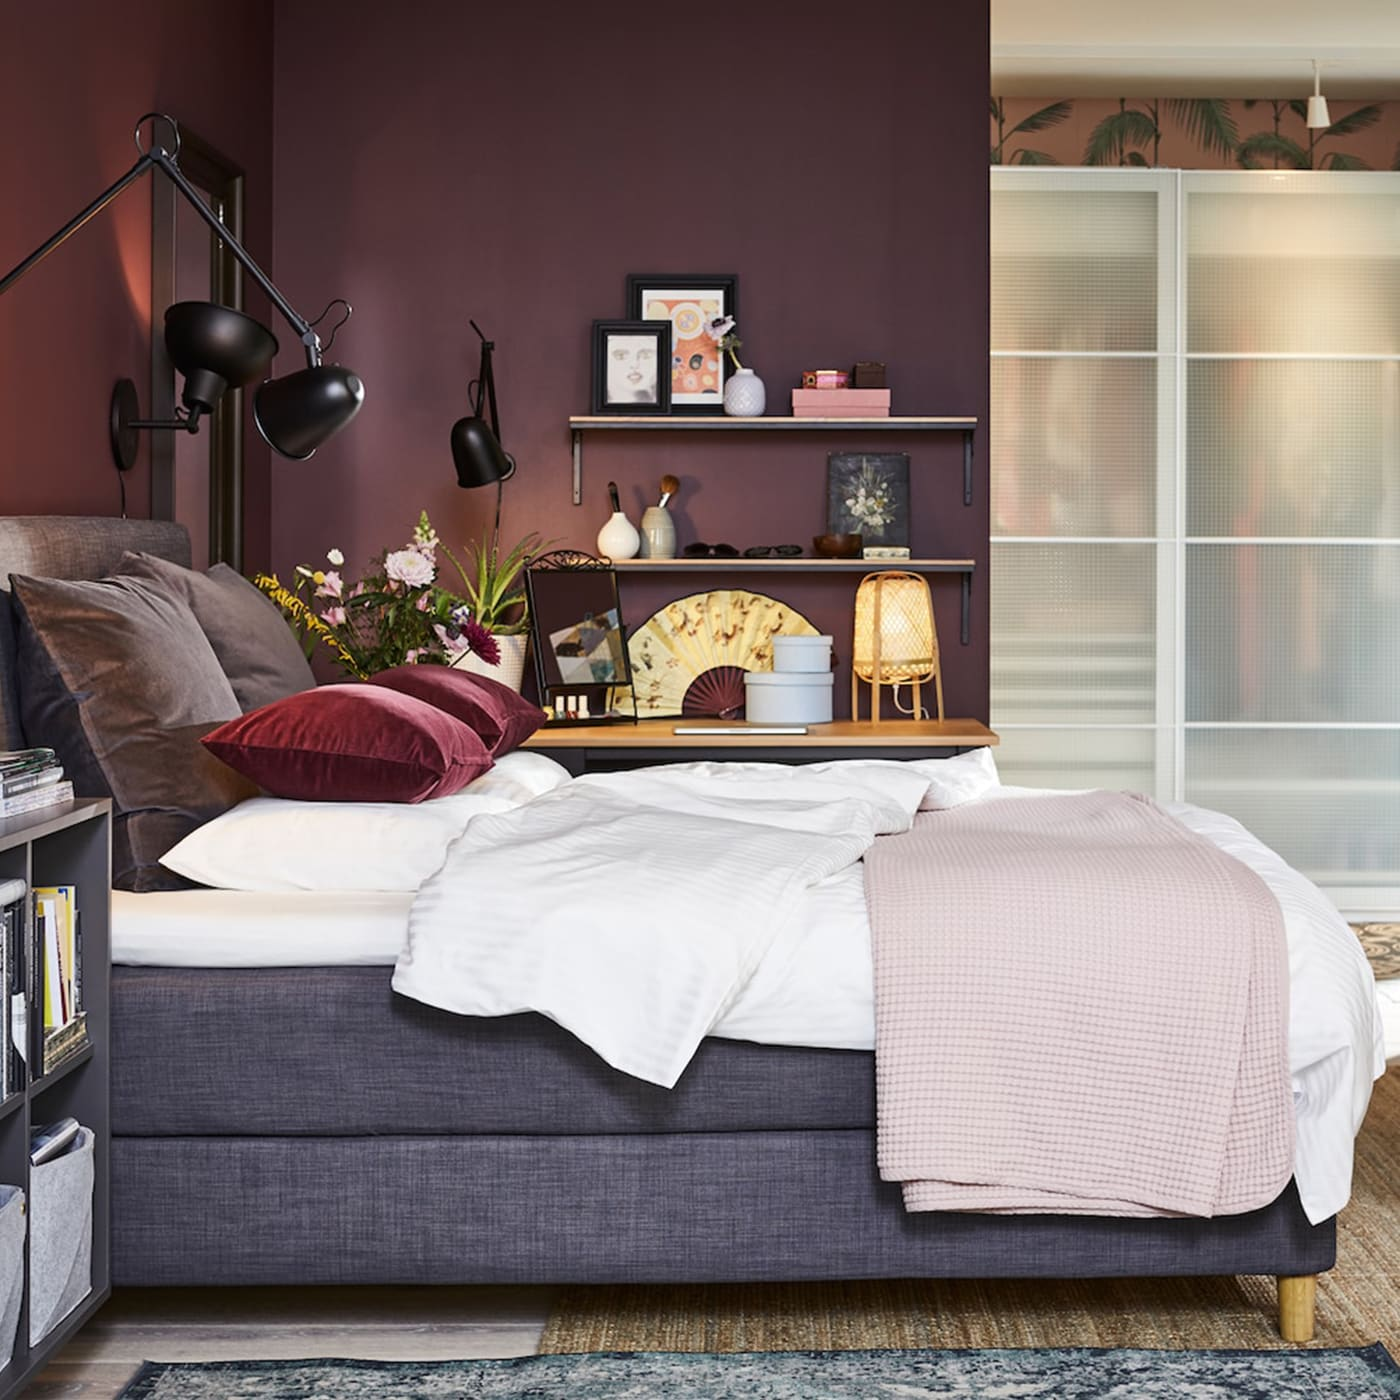 Bedroom with a dark grey divan bed, black wall lamps, a jute rug, a black-brown chest of drawers and dark red cushion covers.